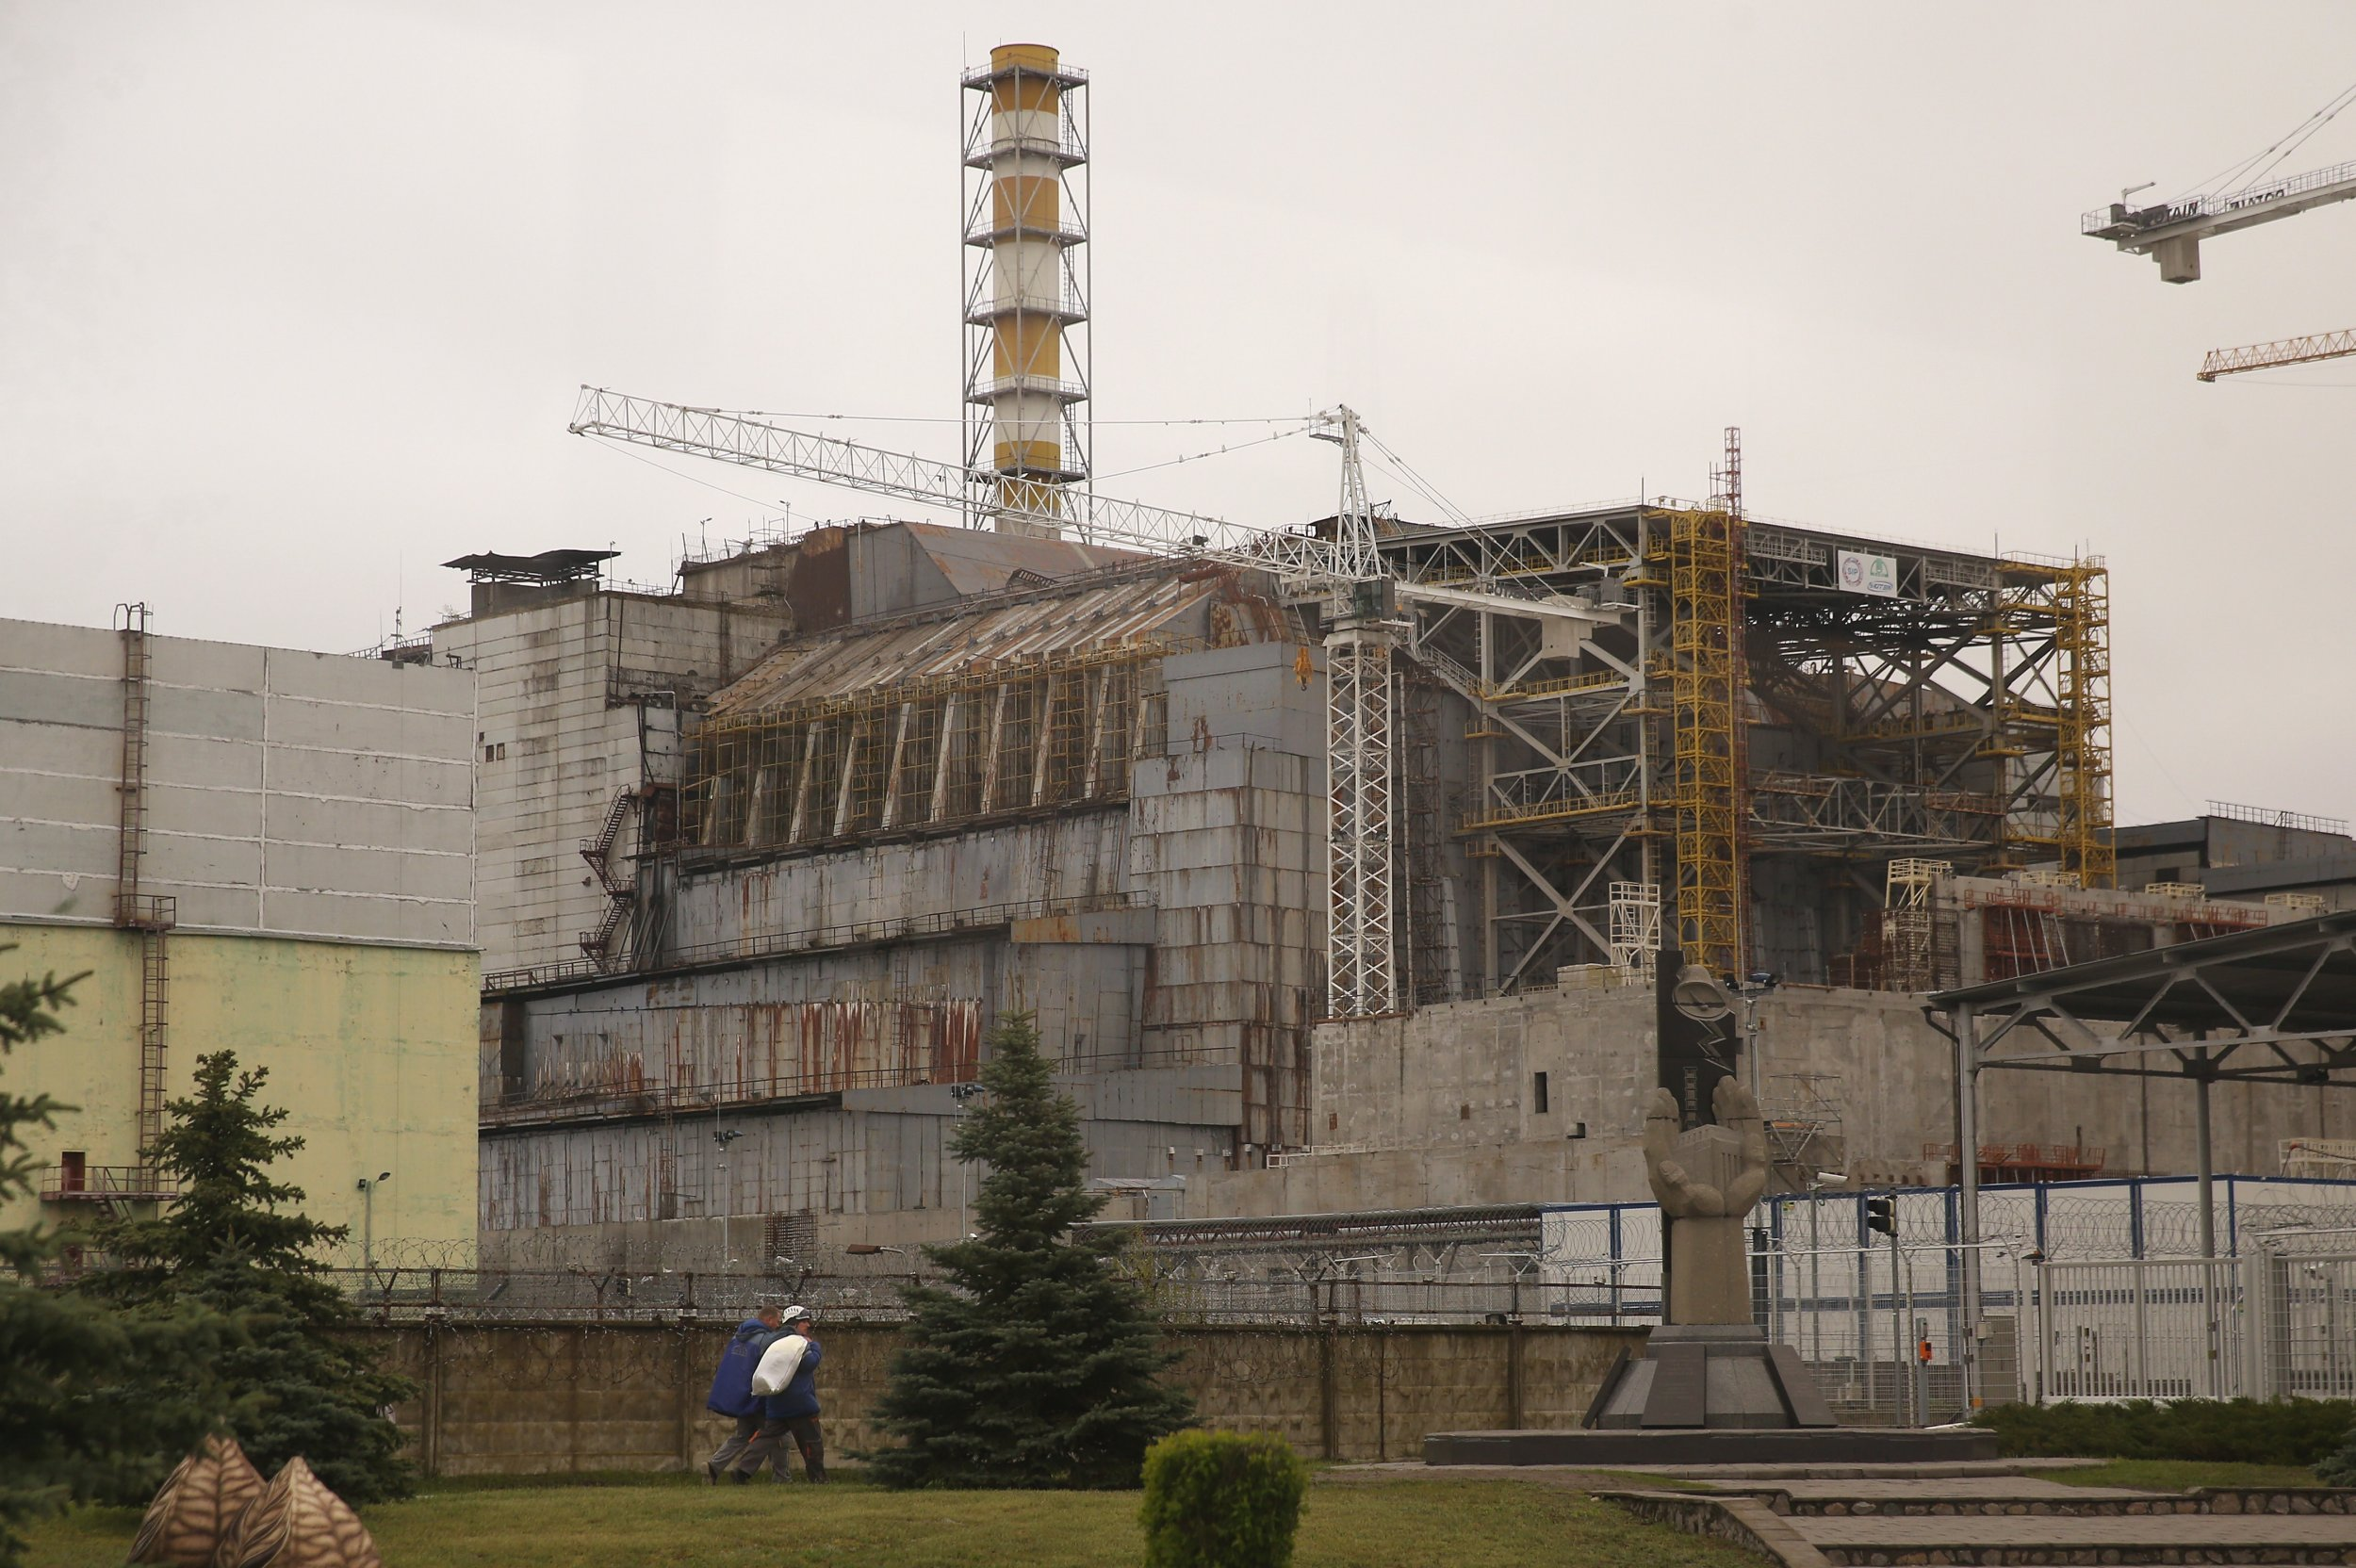 CHORNOBYL, UKRAINE - APRIL 26:  In this photograph taken through a bus window workers walk near the sarcophagus that encloses stricken reactor number four at the Chernobyl nuclear power plant on the 30th anniversary of the Chernobyl nuclear accident on April 26, 2016 near Chornobyl, Ukraine. On April 26, 1986 workers at the Chernobyl nuclear power plant inadvertantly caused a meltdown in reactor number four, causing it to explode and send a toxic cocktail of radioactive fallout into the atmosphere in the world's worst civilian nuclear incident. The fallout spread in plumes across the globe, covering much of Europe and reaching as far as Japan. Today large swathes in Ukraine and Belarus remain too contaminated for human habitation and strong evidence points to ongoing adverse health impacts for people in the larger region.  (Photo by Sean Gallup/Getty Images)